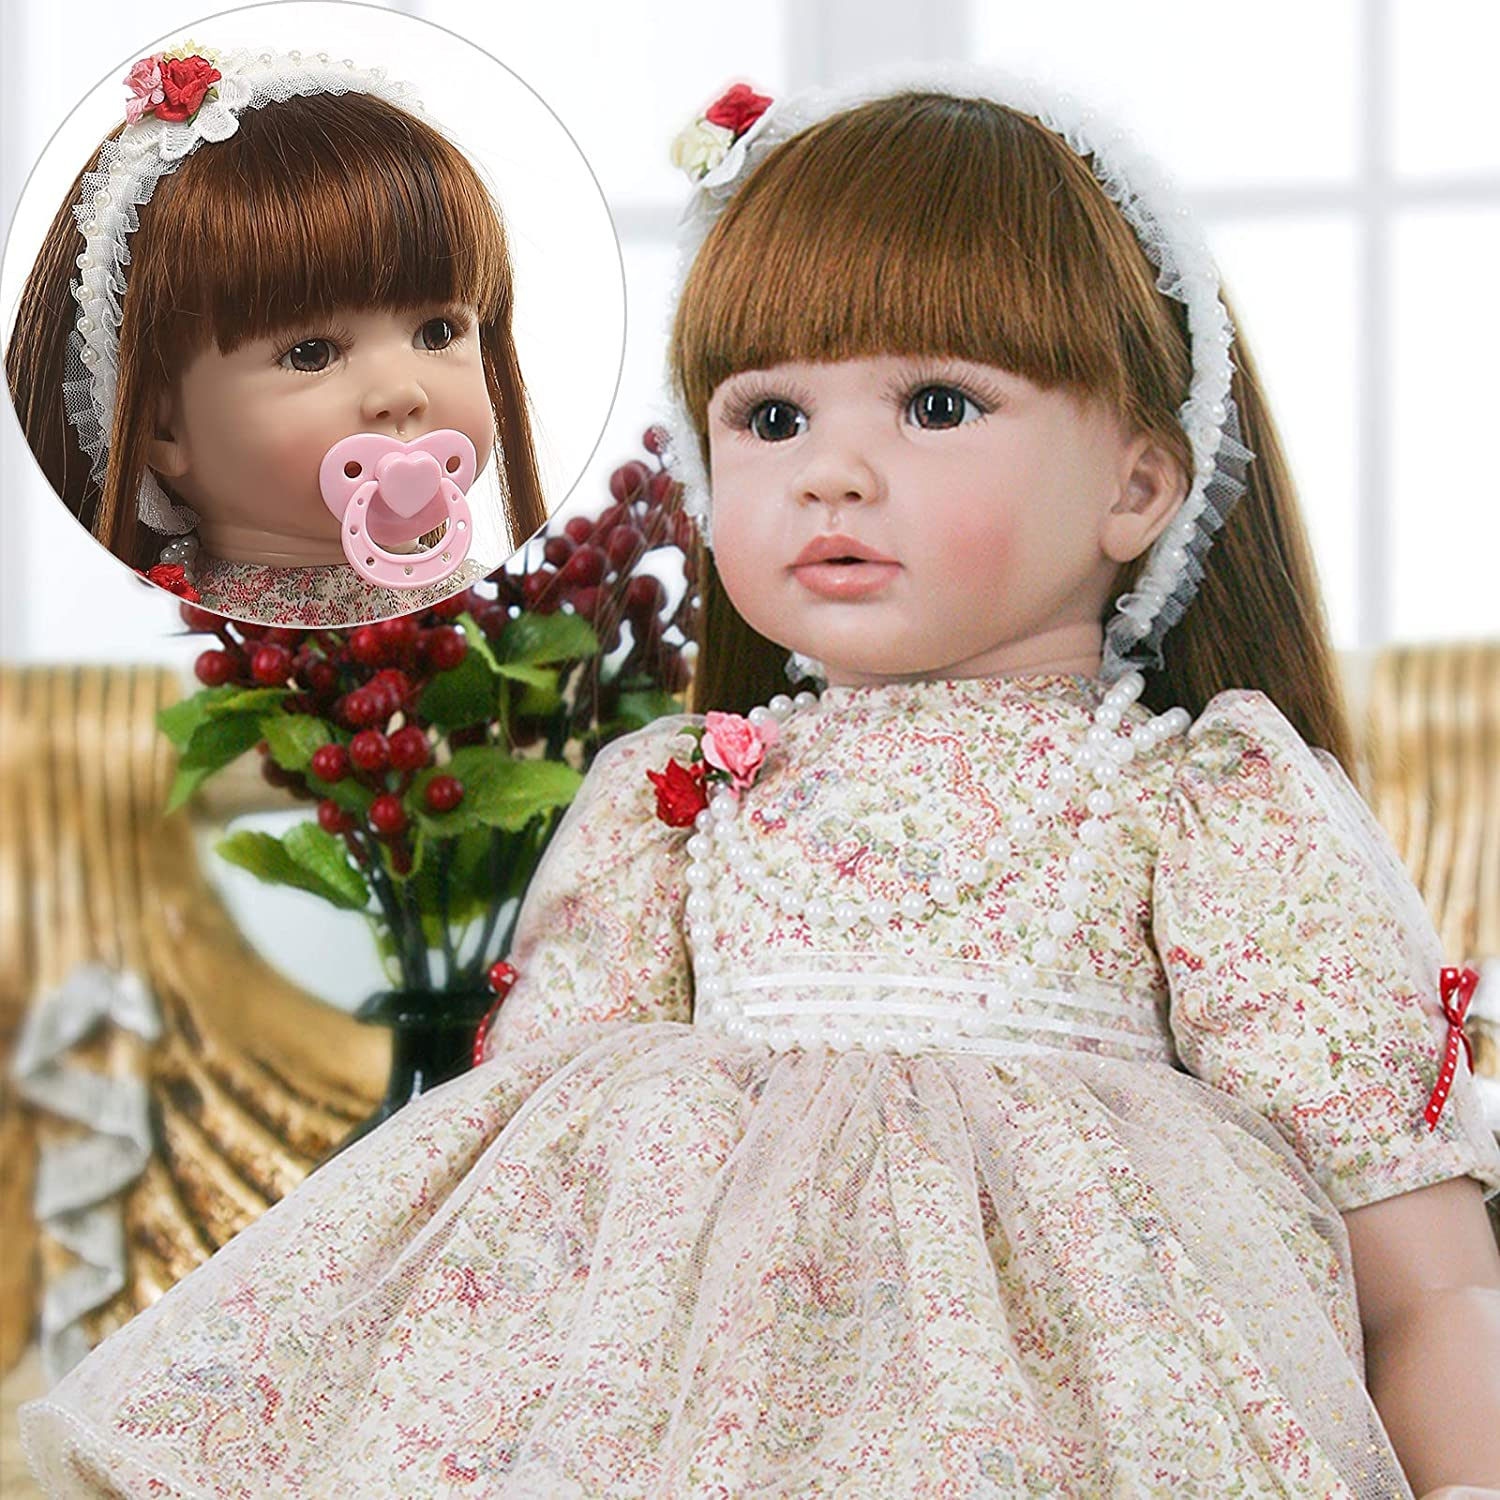 Reborn Toddler Dolls Realistic Baby Doll Handmade Princess ...